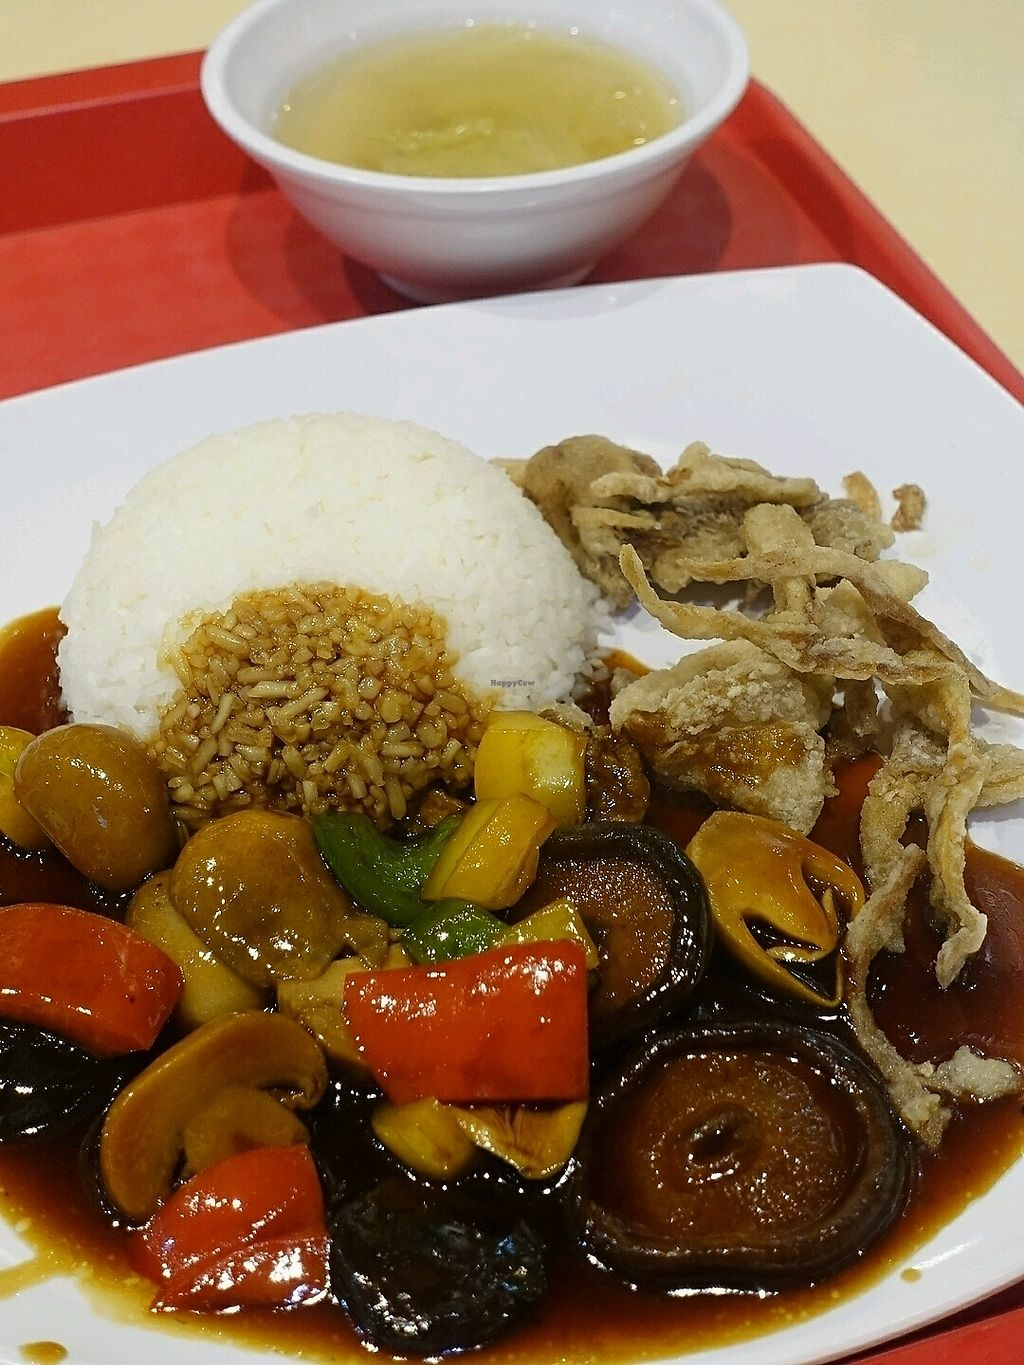 """Photo of CLOSED: San Guo Vegetarian Cuisine  by <a href=""""/members/profile/JimmySeah"""">JimmySeah</a> <br/>stew 3 mushroom rice. combination of 3 types of mushrooms  <br/> December 9, 2017  - <a href='/contact/abuse/image/106850/333580'>Report</a>"""